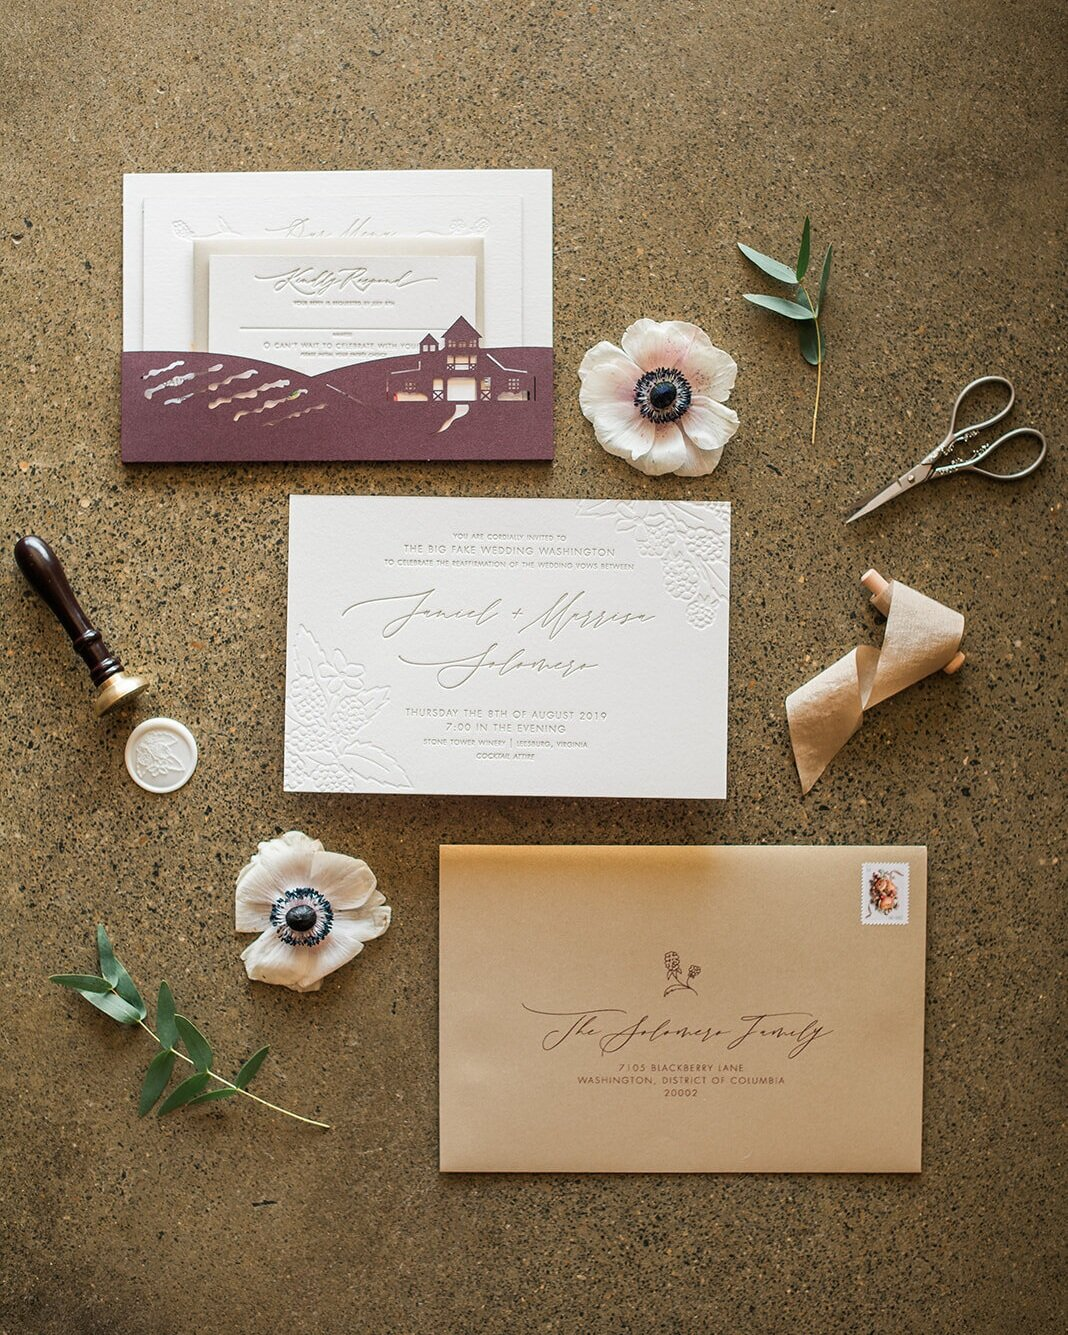 TypeA-Invitations_LetterpressWeddingInvitations_Gold_BerryPurpleRed_WineryWedding_BlackberryFarm_Waxseal_customIllustrations_bespokedesign_chelsea-blanch-photography-BFW-DC-32_websize.jpg